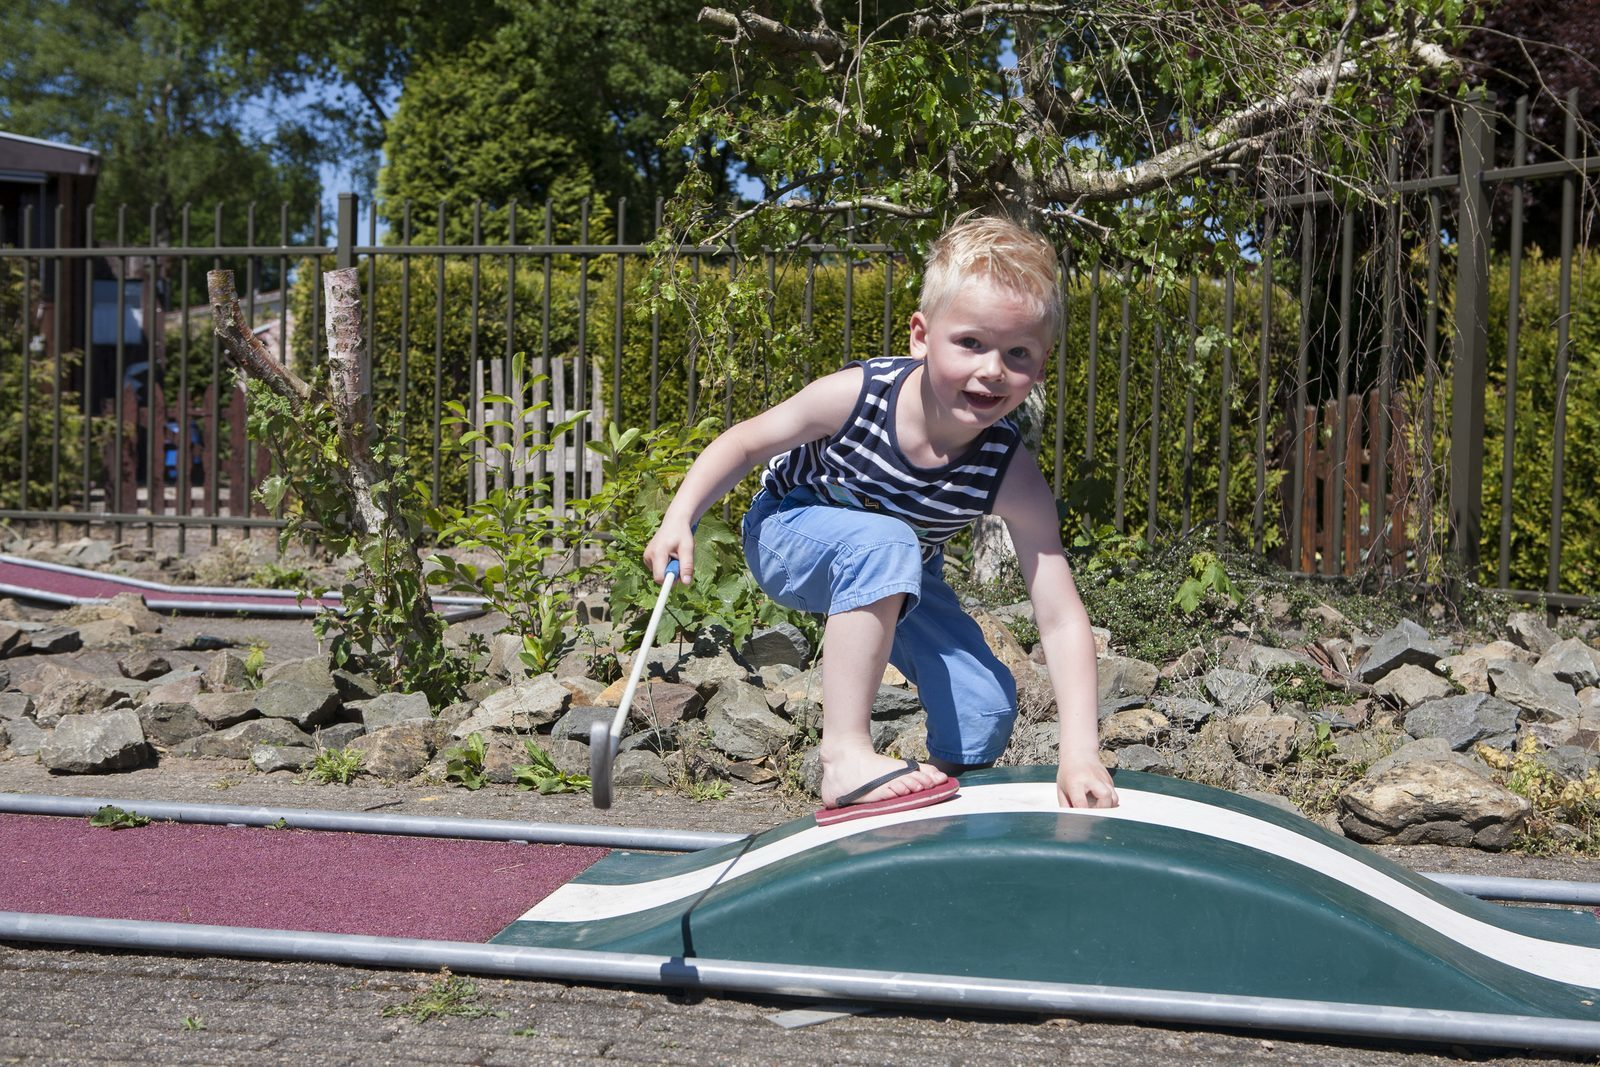 Miniature golf is lots of fun for the kids as well